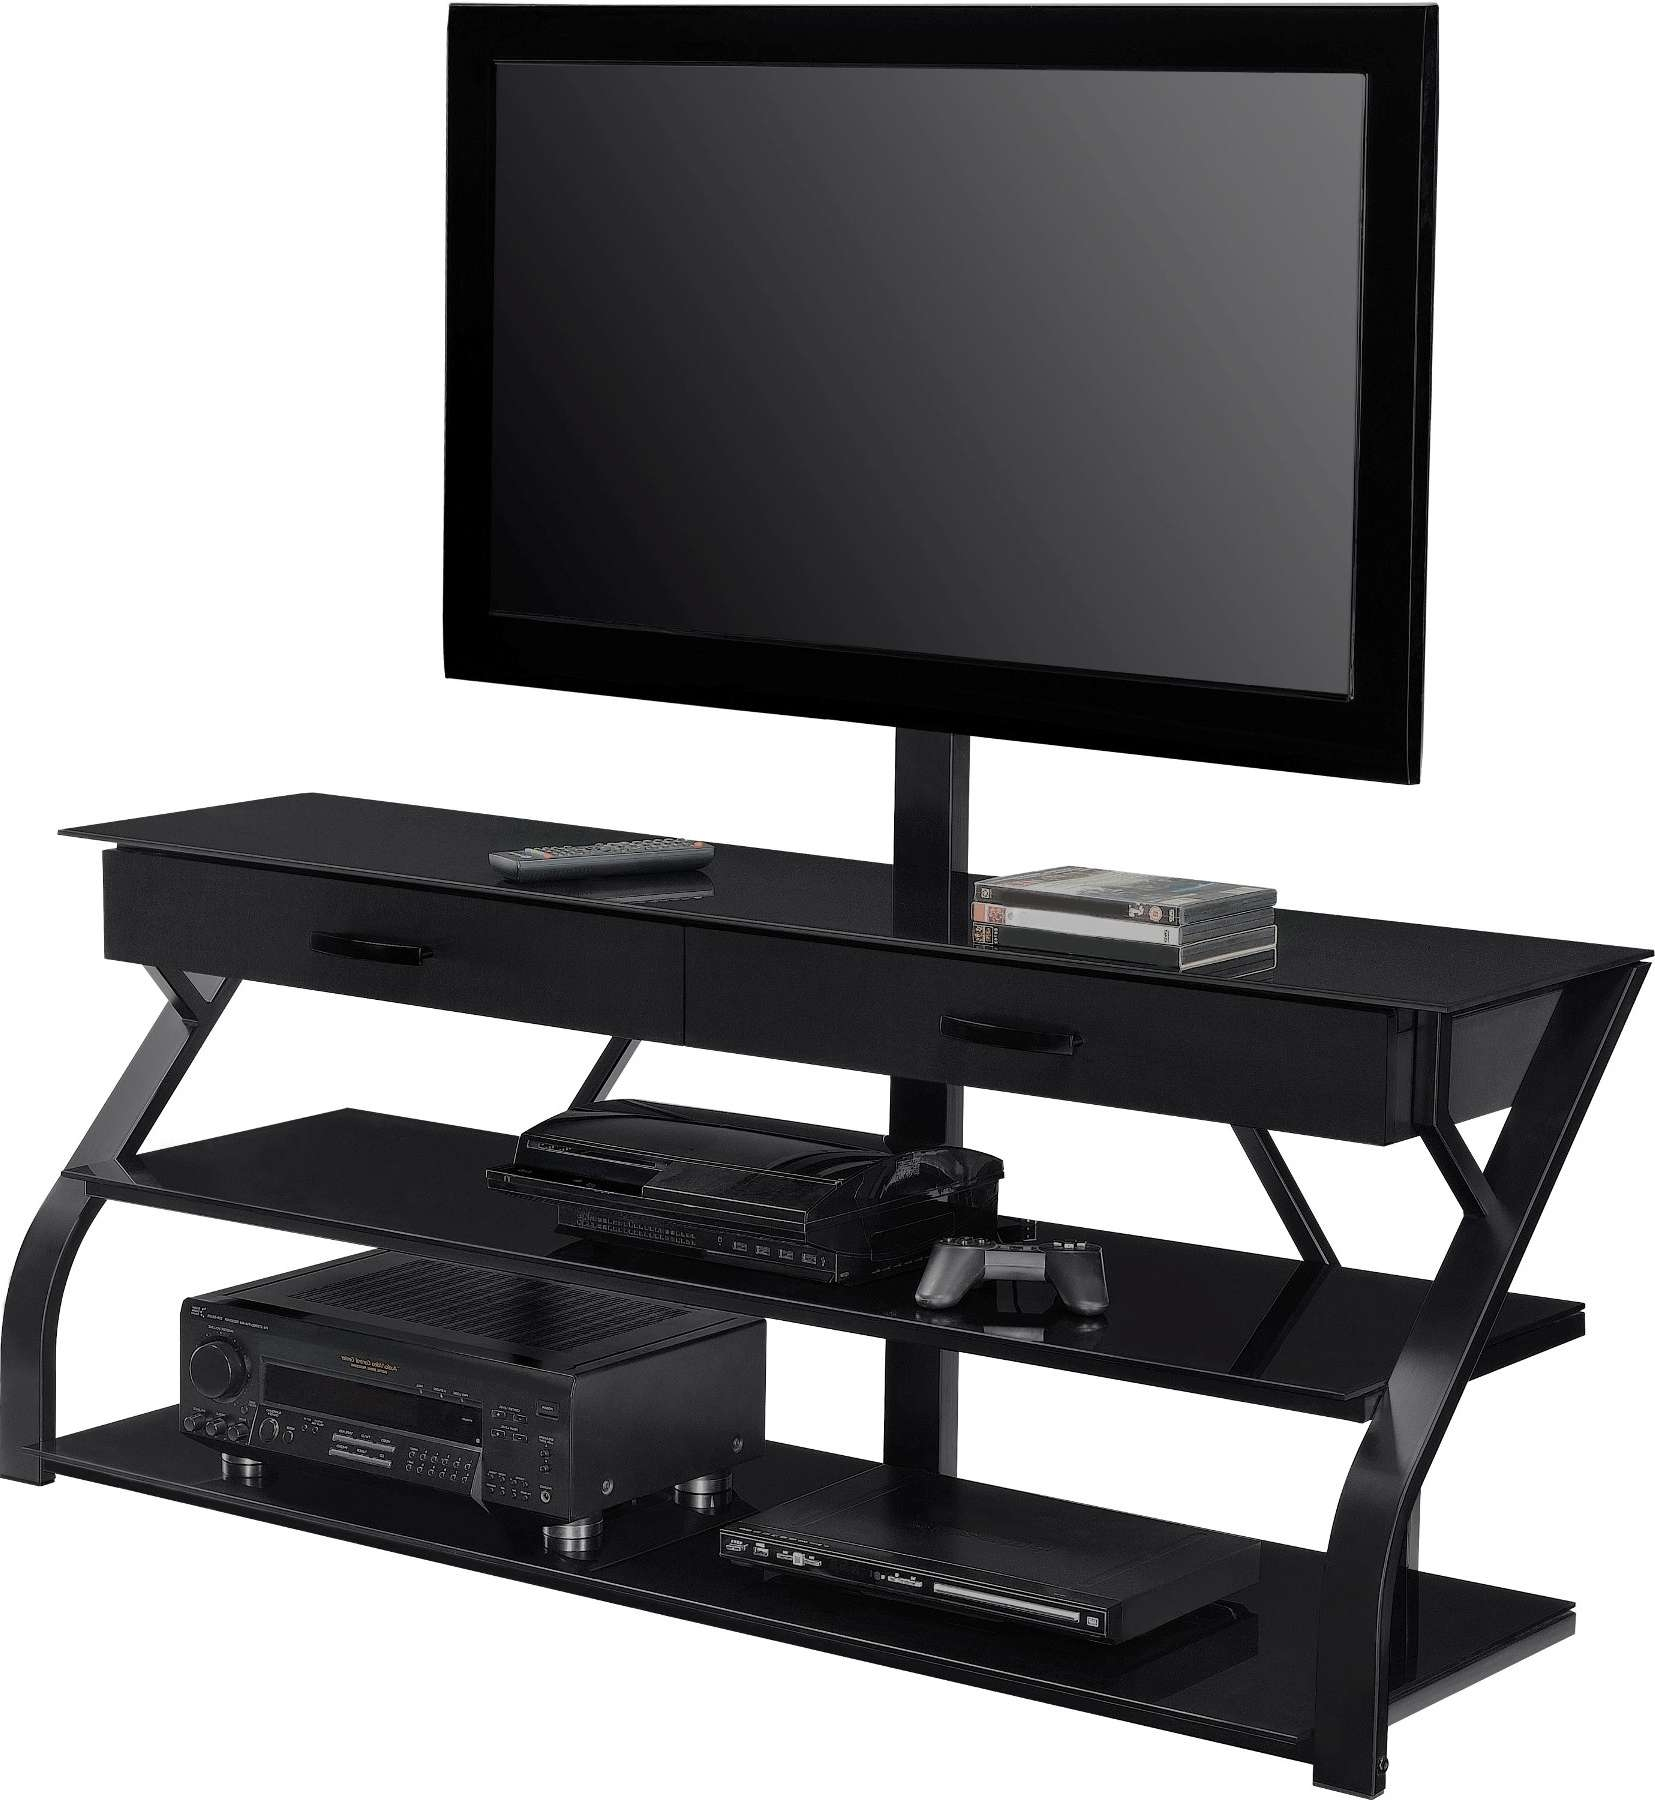 Large Black Tone Media Console With Storage Drawers Of Gorgeous With Regard To Swivel Black Glass Tv Stands (View 4 of 15)